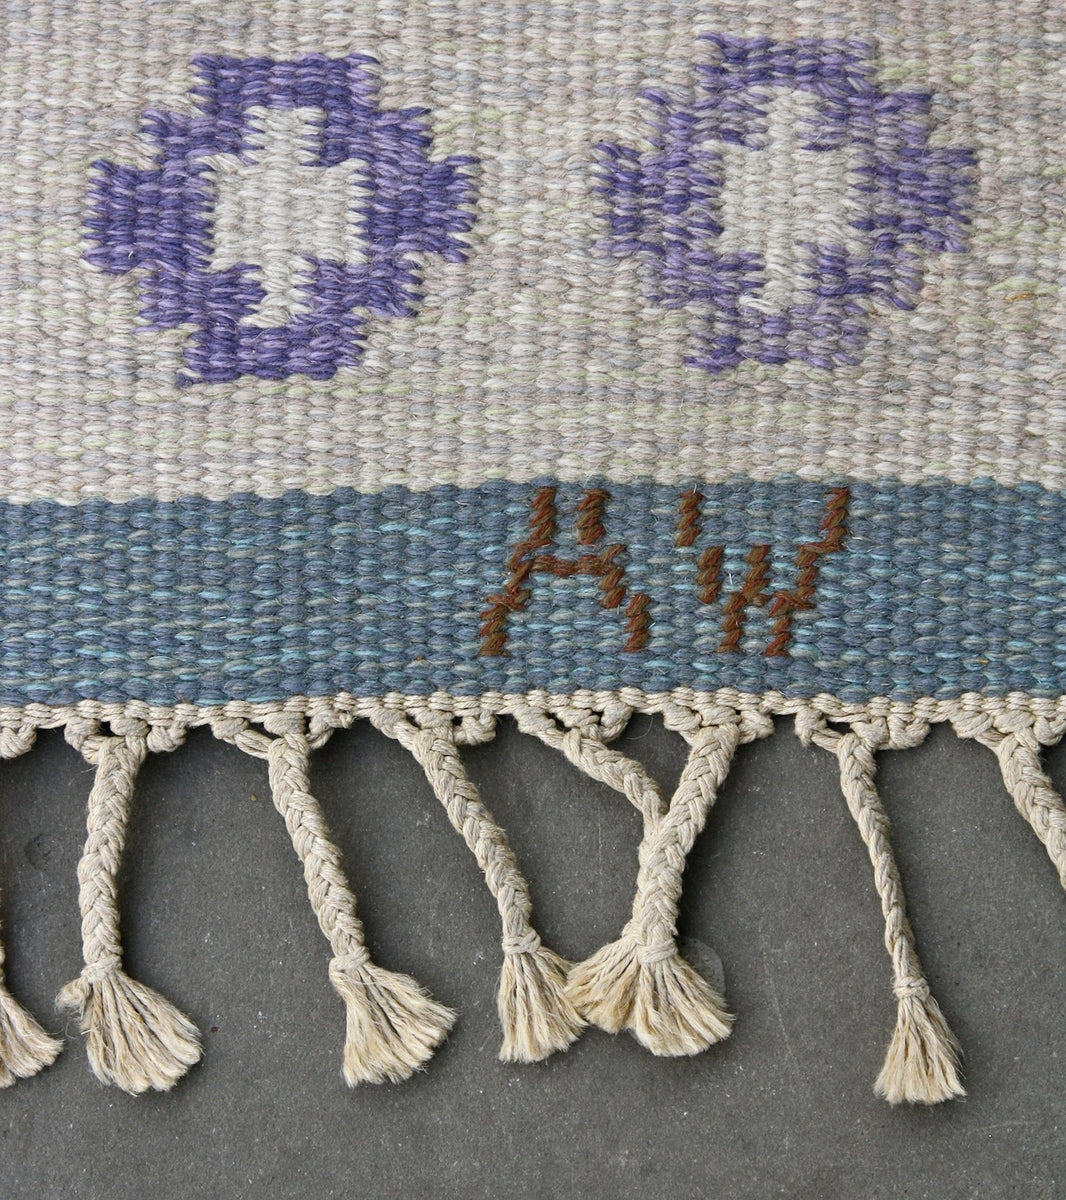 Blue flatweave rug by  Mai Wellner - Image 8